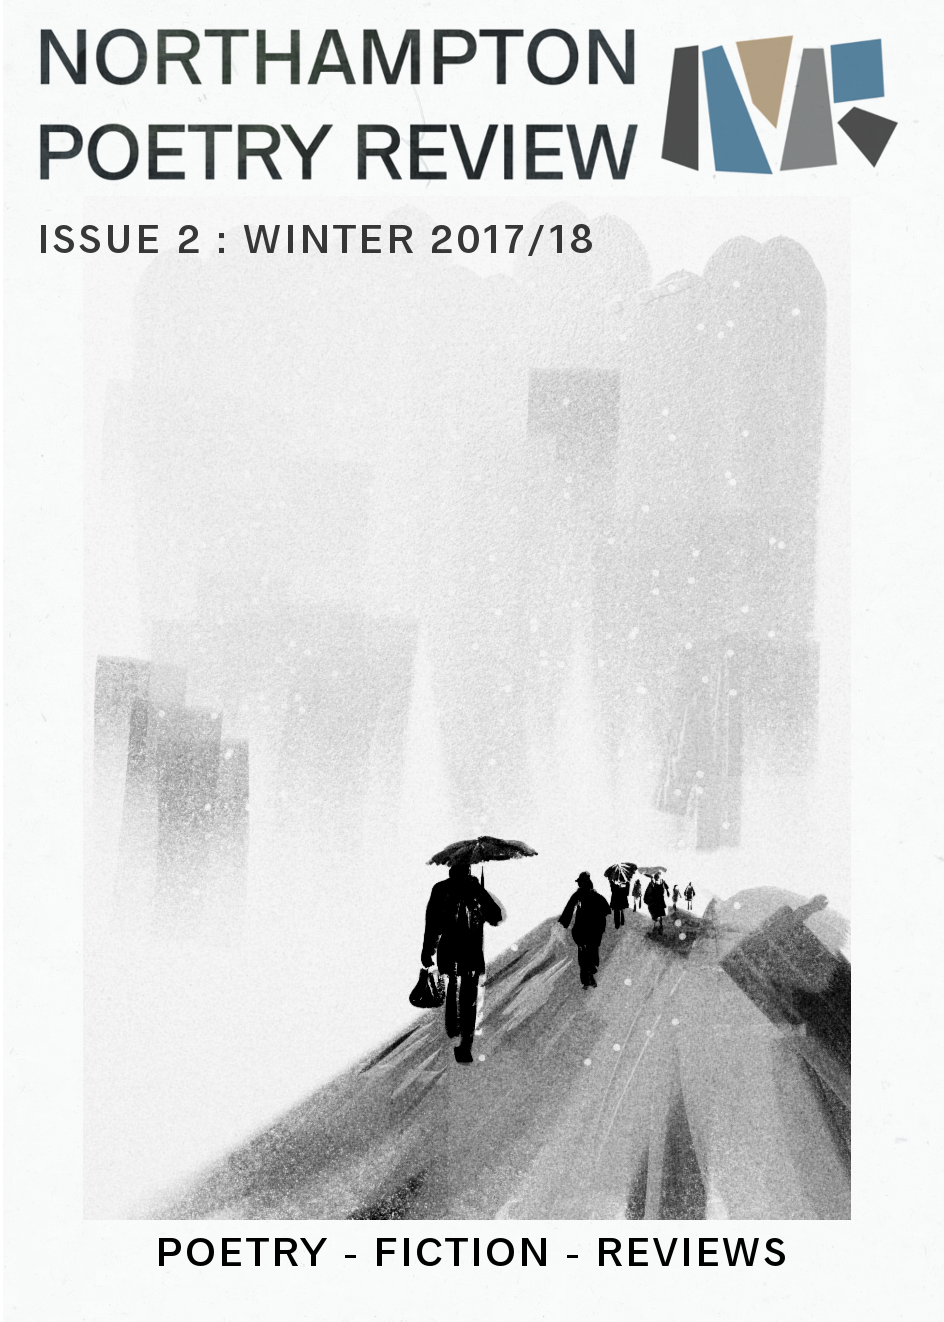 Download Northampton Poetry Review Issue 2: Winter 2017/18 [.PDF] by clicking on the cover image. Or read via issuu below